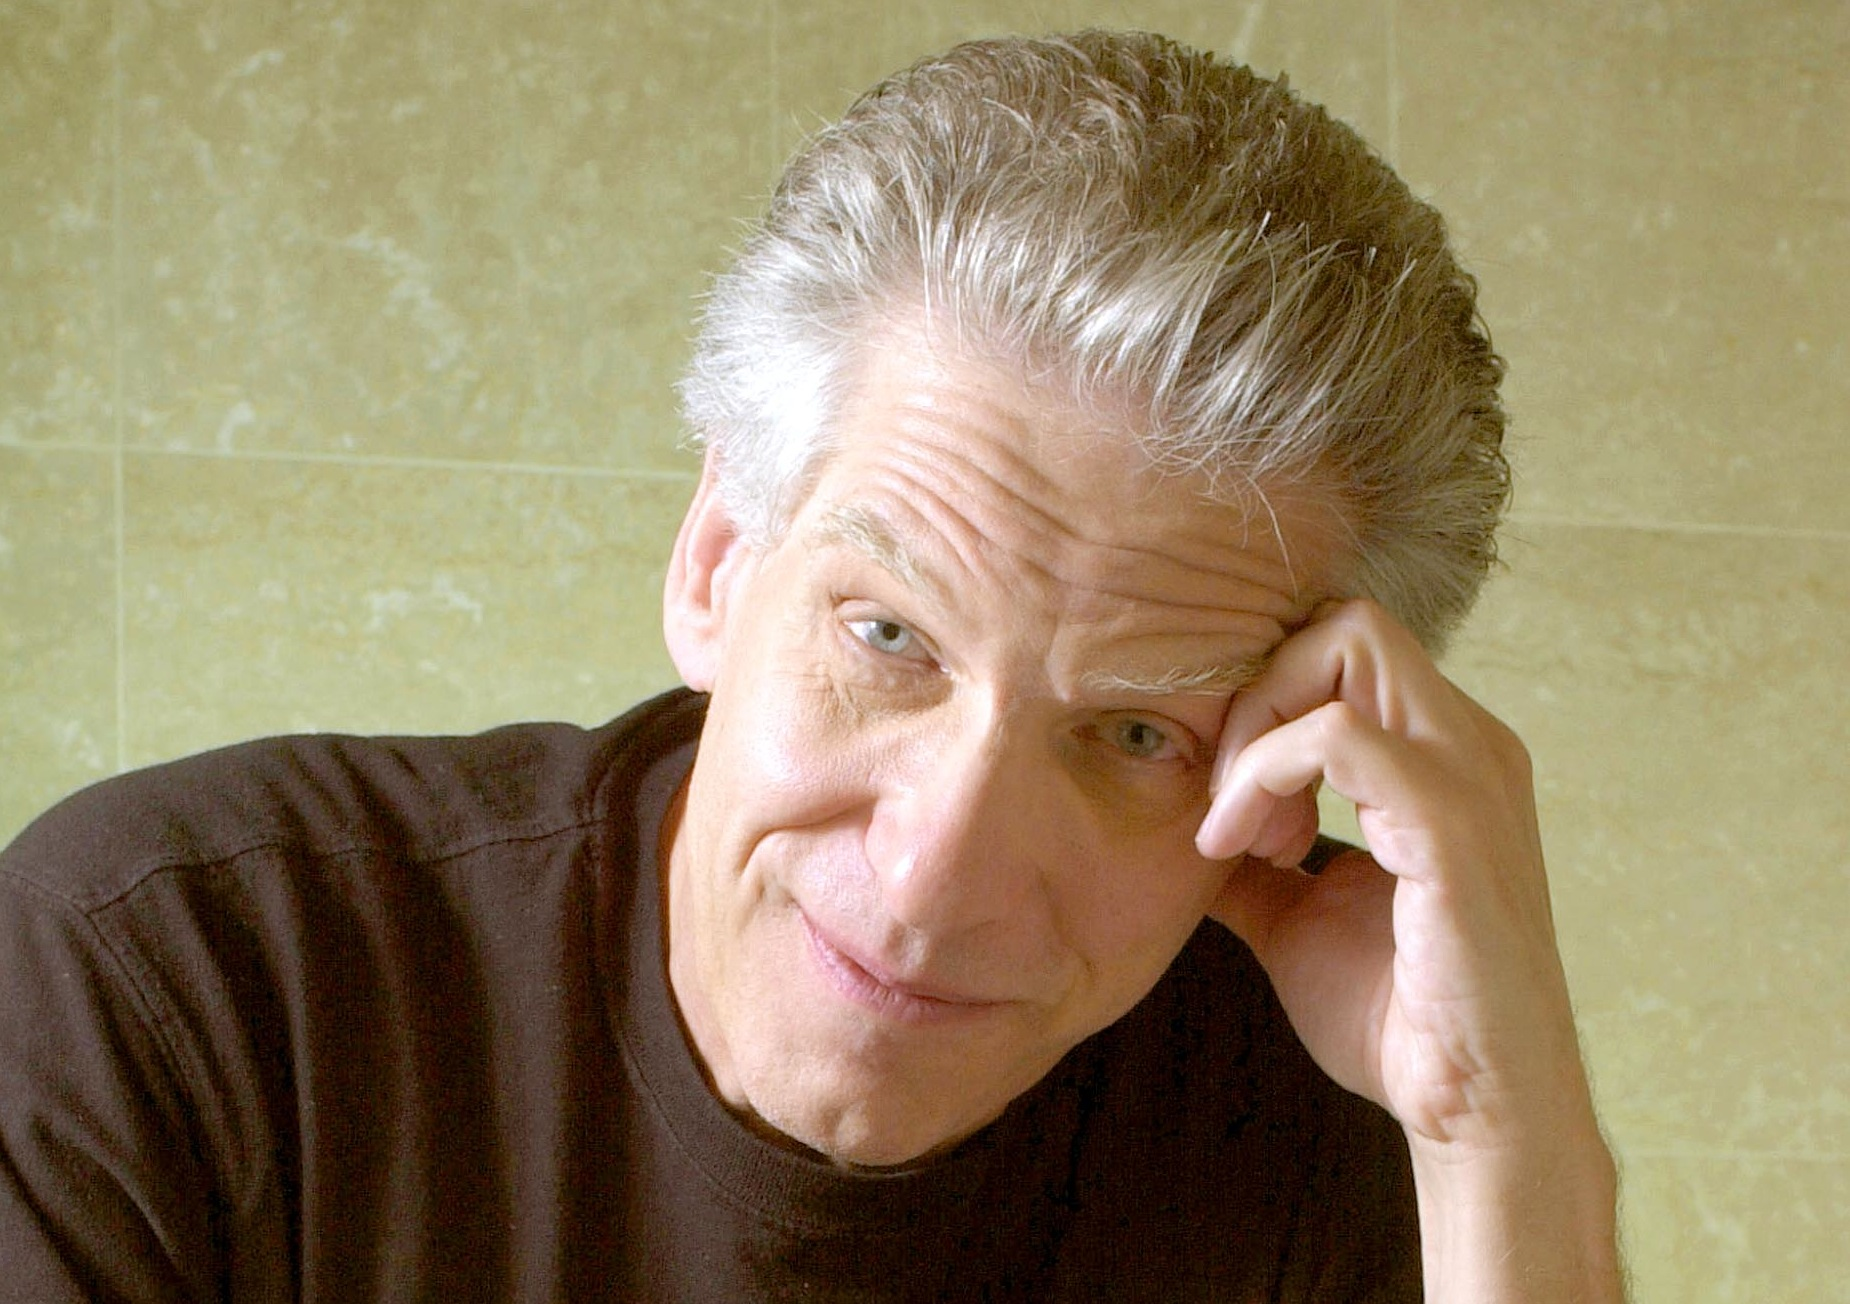 david cronenberg noveldavid cronenberg interviews with serge grunberg, david cronenberg filmography, david cronenberg film, david cronenberg scanners, david cronenberg existenz, david cronenberg book, david cronenberg best films, david cronenberg email, david cronenberg wikipedia, david cronenberg director, david cronenberg viggo mortensen, david cronenberg twitter, david cronenberg novel, david cronenberg imdb, david cronenberg news, david cronenberg metacritic, david cronenberg consumed pdf, david cronenberg rabid trailer, david cronenberg goodreads, david cronenberg height